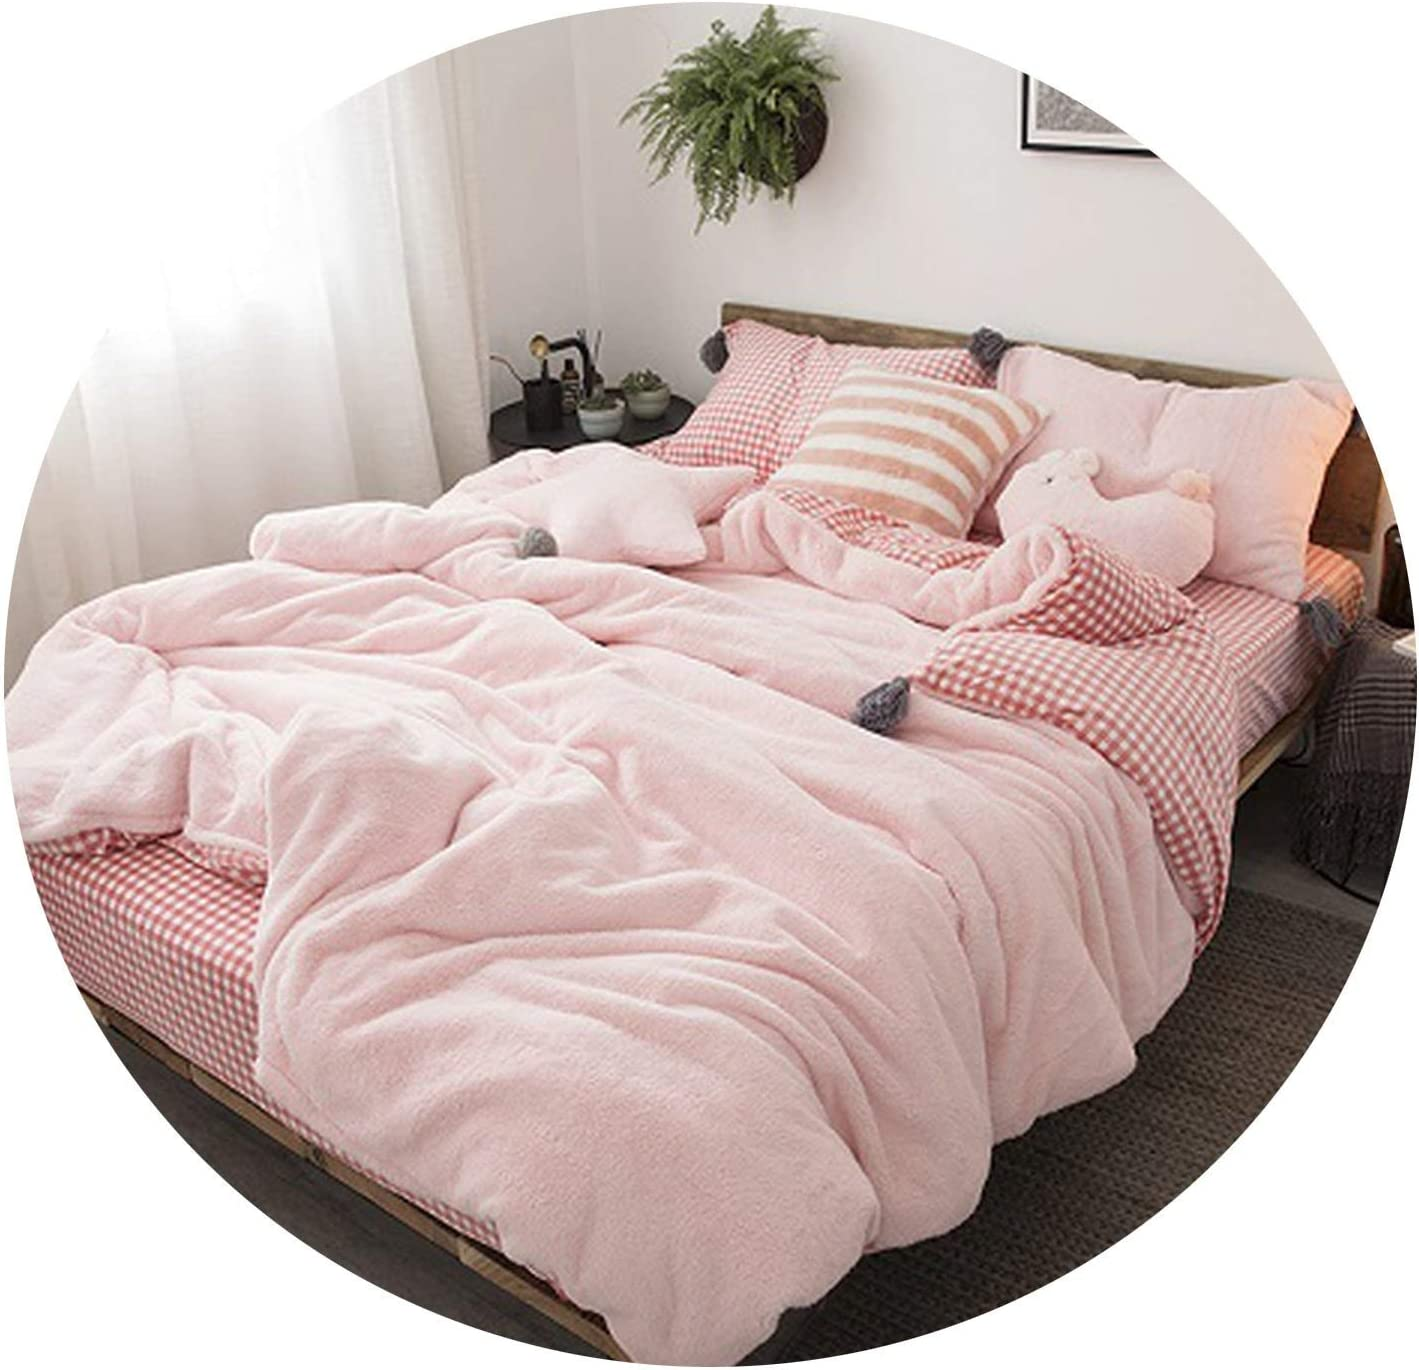 Amazon Com Moon Home Textile White Gray Pink Soft Winter Thick Fleece Fabric Girl Bedding Set Velvet Flannel Duvet Cover Bed Linen Fitted Sheet Pillowcases 3 Full Size 6pcs Fitted Sheet Style Home Kitchen